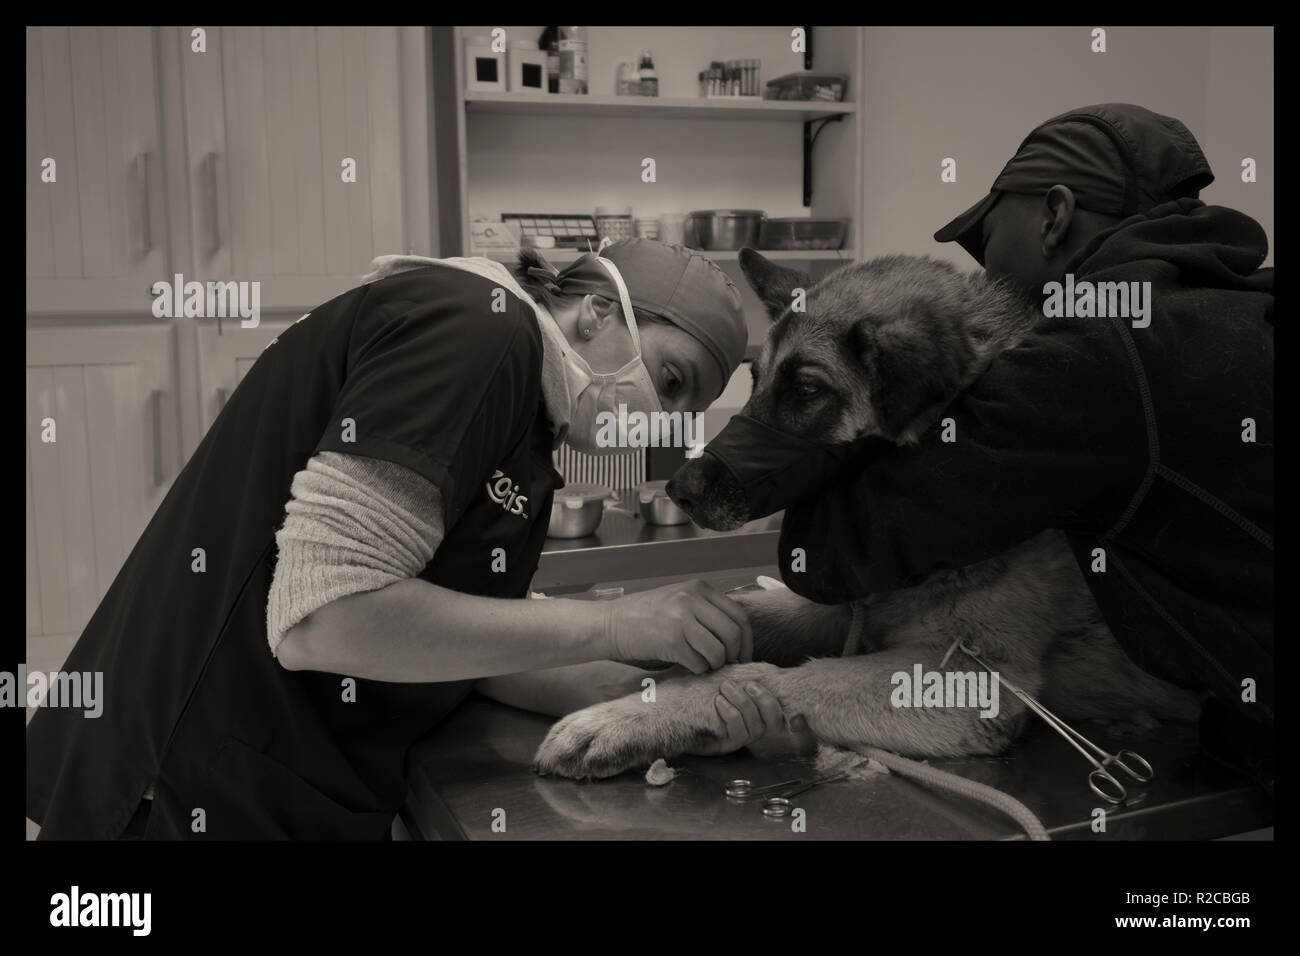 Vet at work - Stock Image